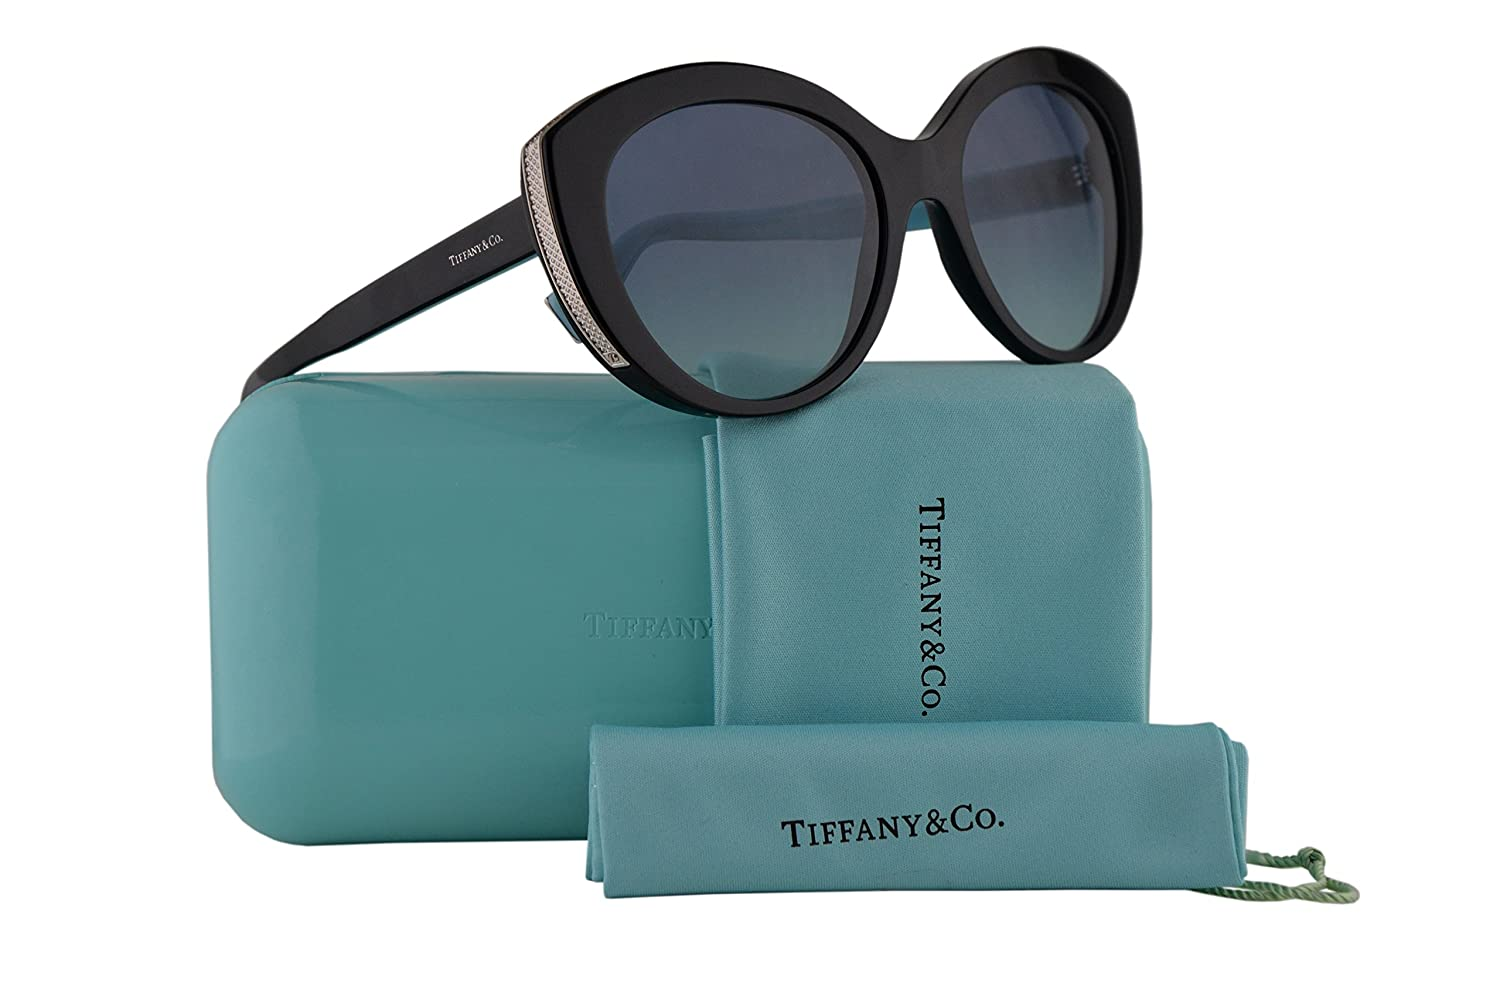 1457538a73c Amazon.com  Tiffany   Co. TF4151 Sunglasses Black w Blue Gradient Lens 54mm  80019S Tiffany Co. TF 4151  Clothing